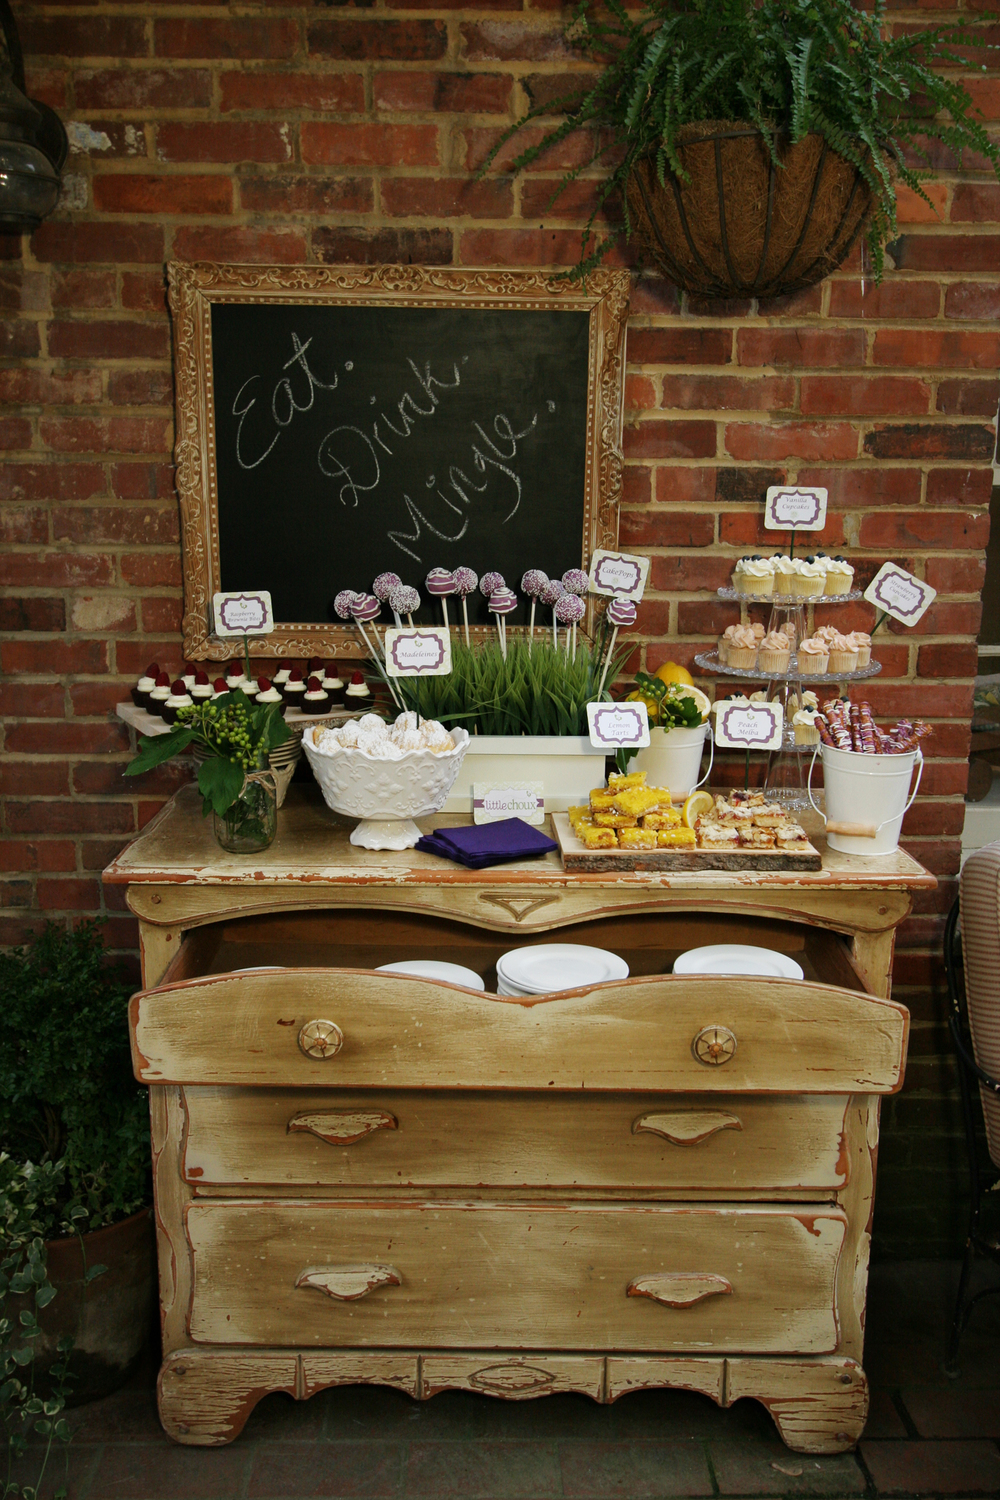 Garden party dessert bar; antique furniture bar; Pink and green bubblegum favors for girls tennis themed birthday party; Event styled by Washington DC event planner Petite Social on Fortique